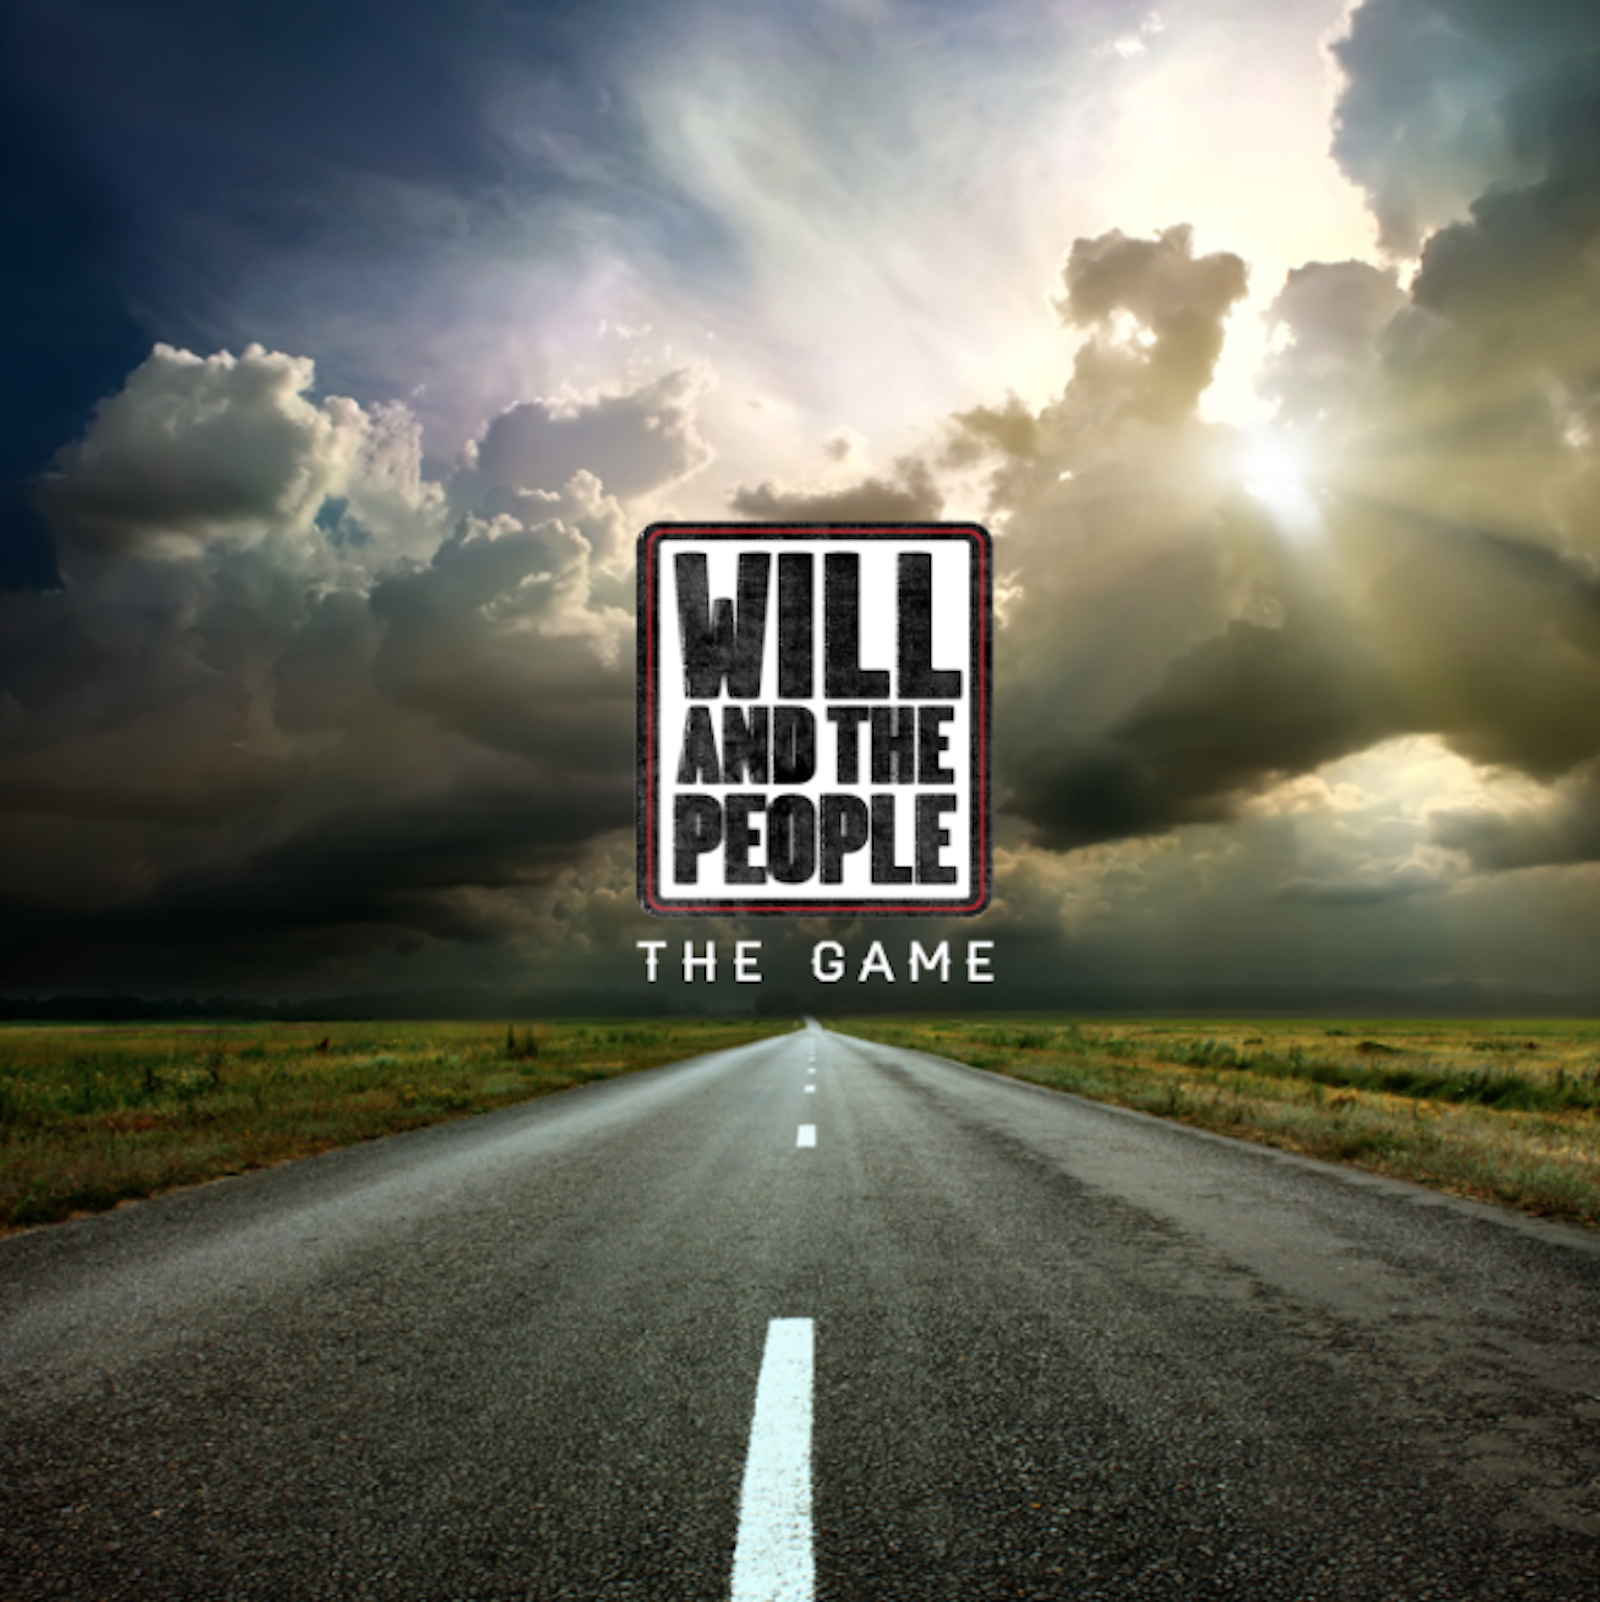 The Game Video - Will and The People